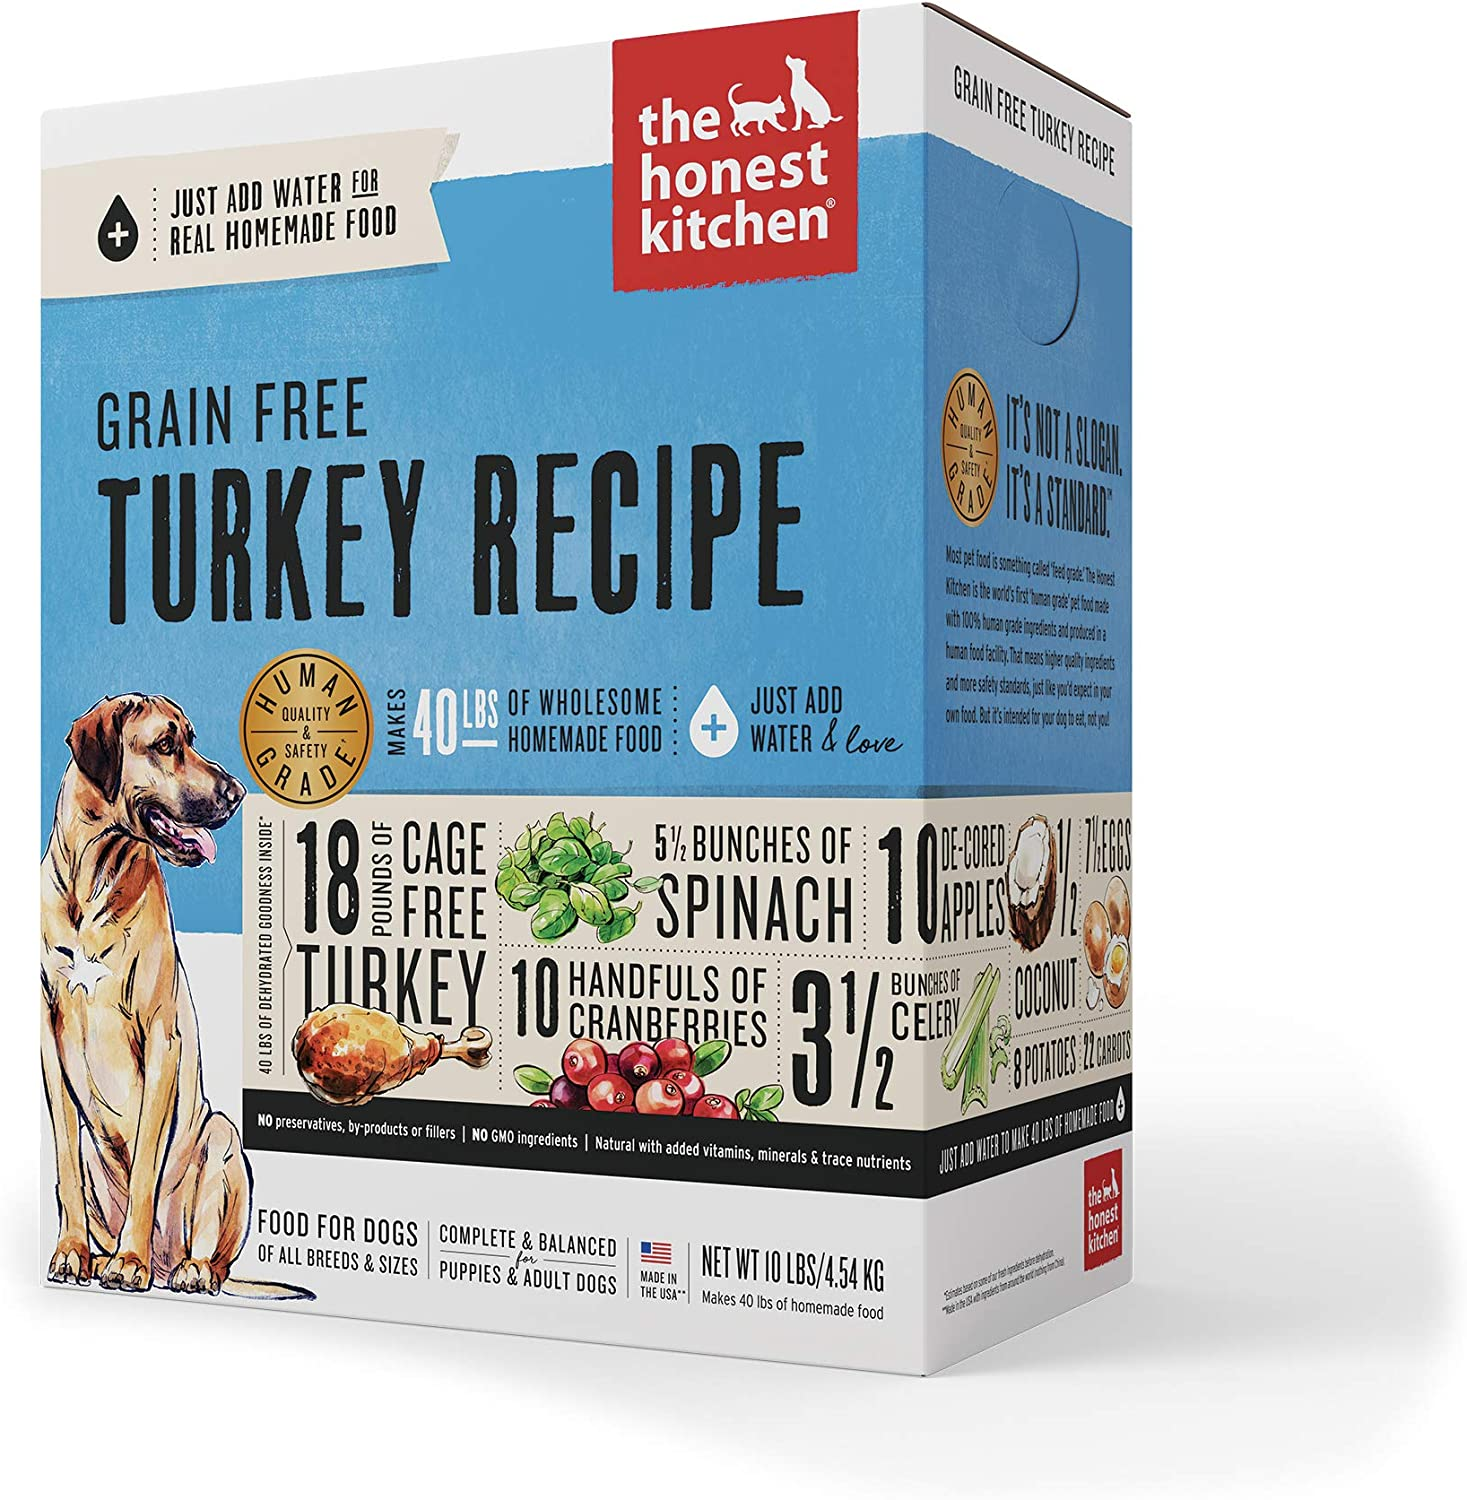 6. The Honest Kitchen Grain-Free Dehydrated Dog Food